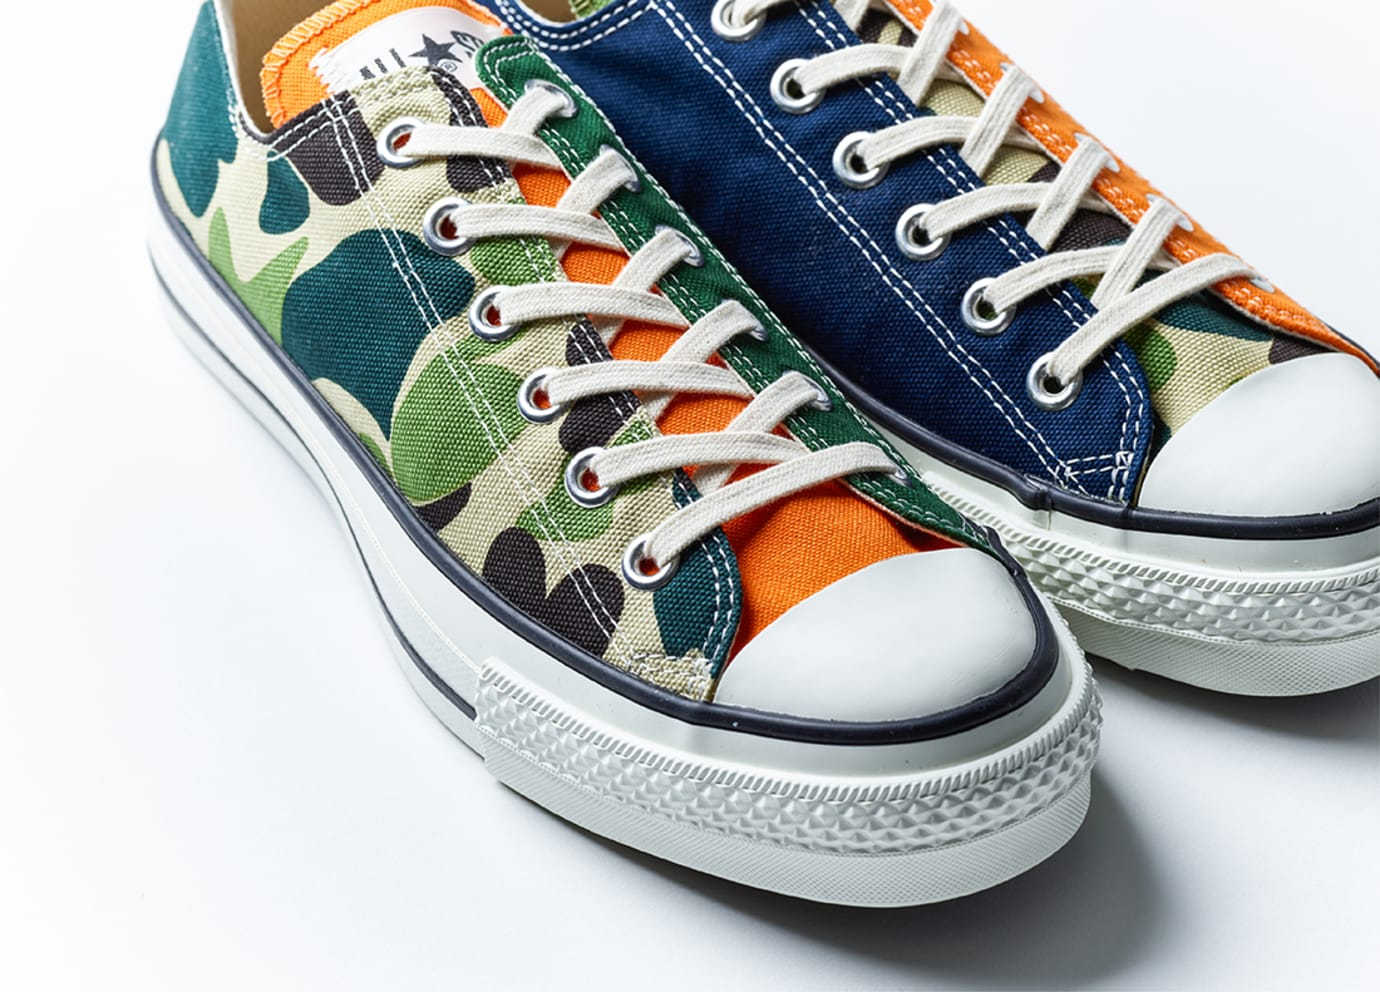 2054daacad08 Billy s x Converse Chuck Taylor All Star Low Release Date